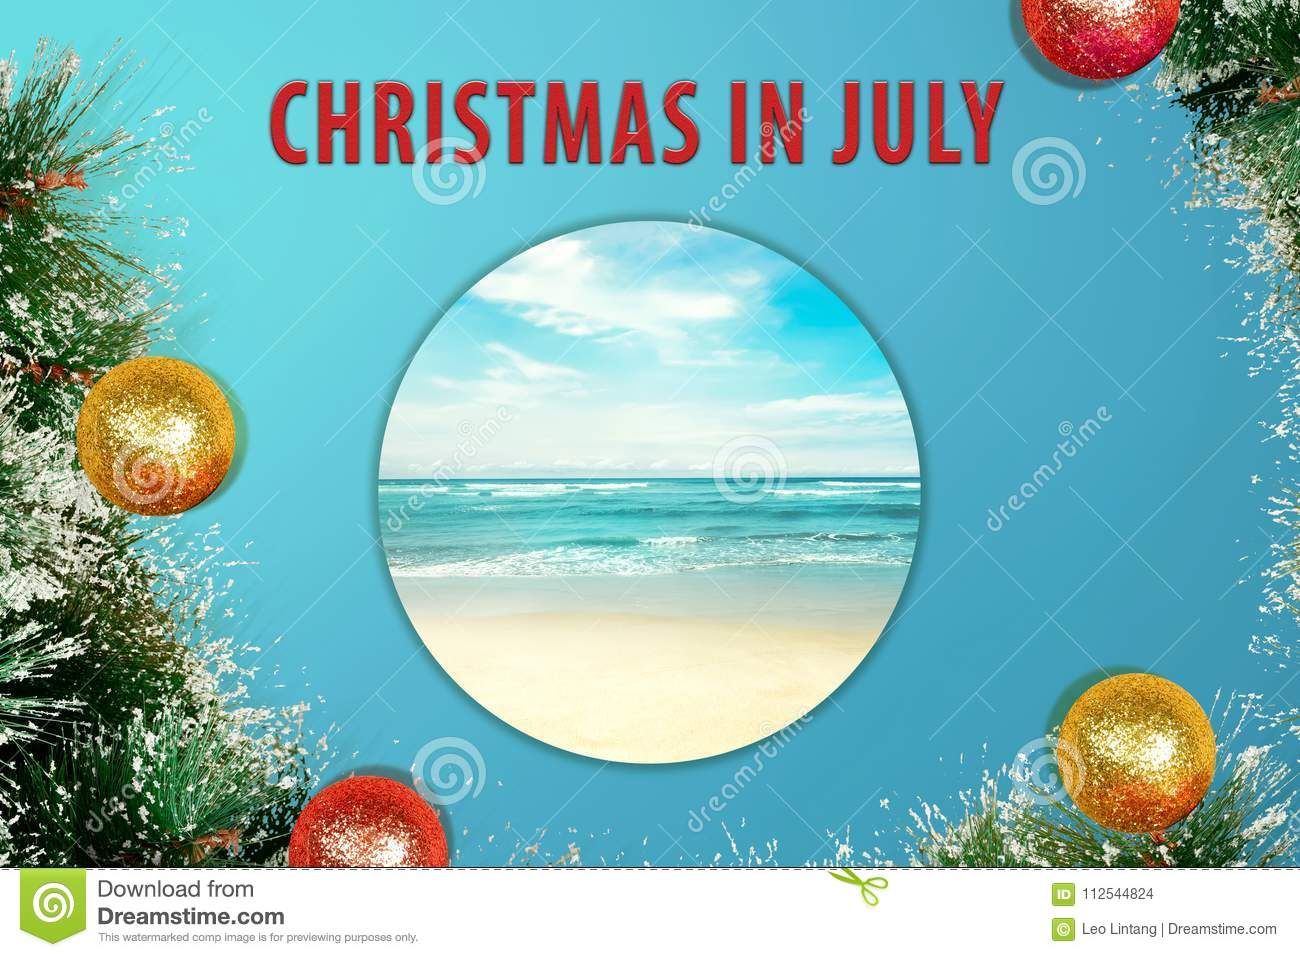 Christmas In July Background Images.Colorful Glitter Decoration On Christmas In July Stock Photo